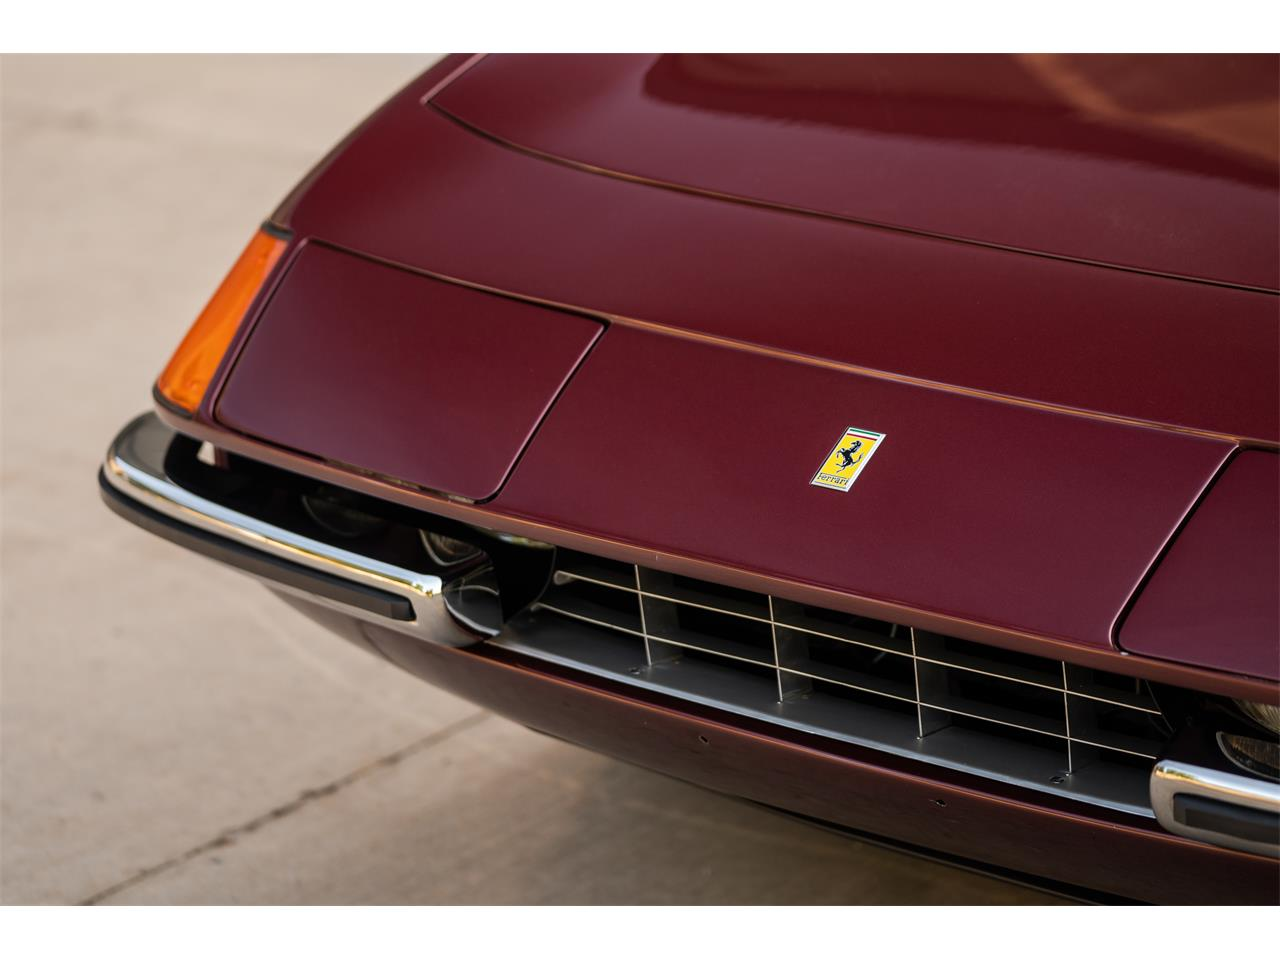 Large Picture of Classic 1972 365 GTB/4 Daytona located in Michigan - $725,000.00 Offered by LBI Limited - QL32